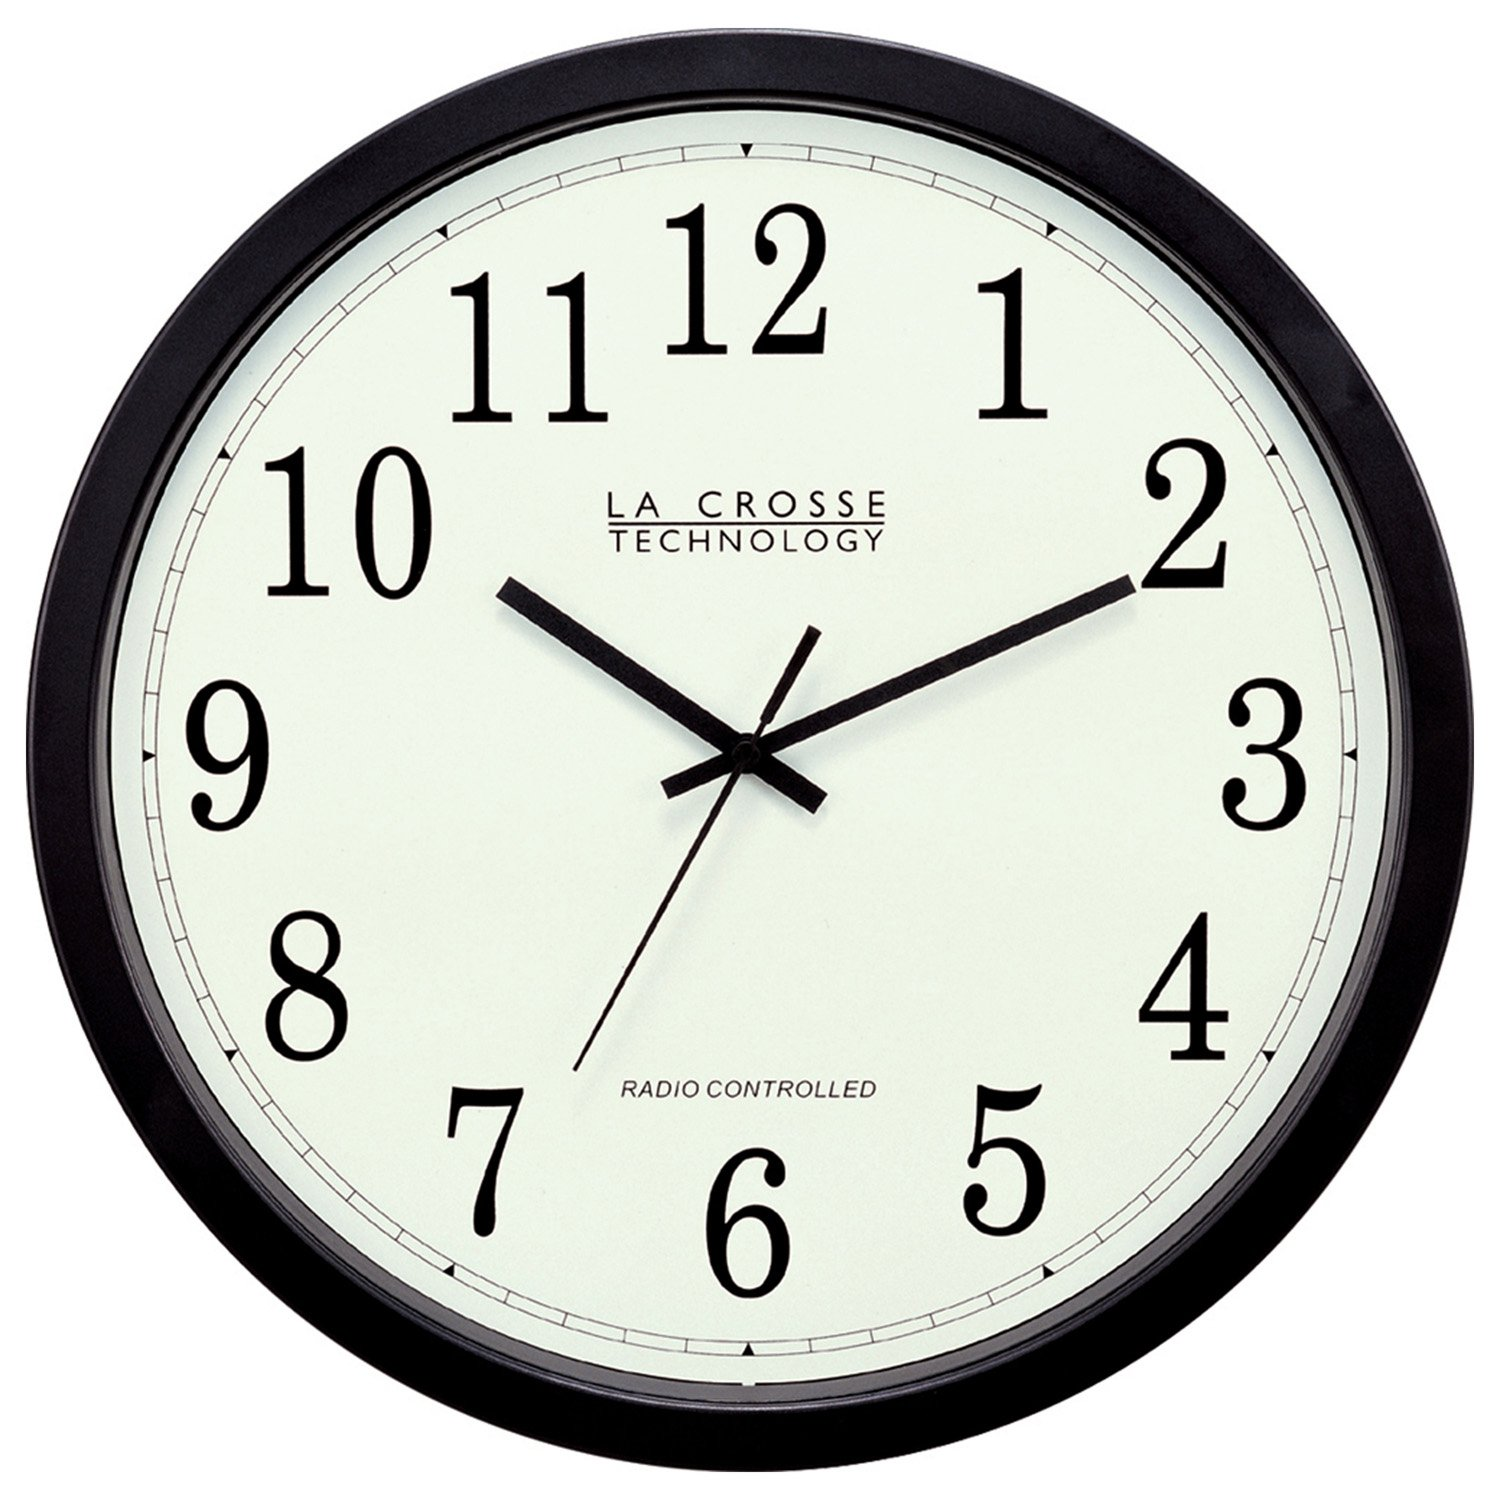 Outdoor Clocks & Thermometers 14in Atomic Analog Clock